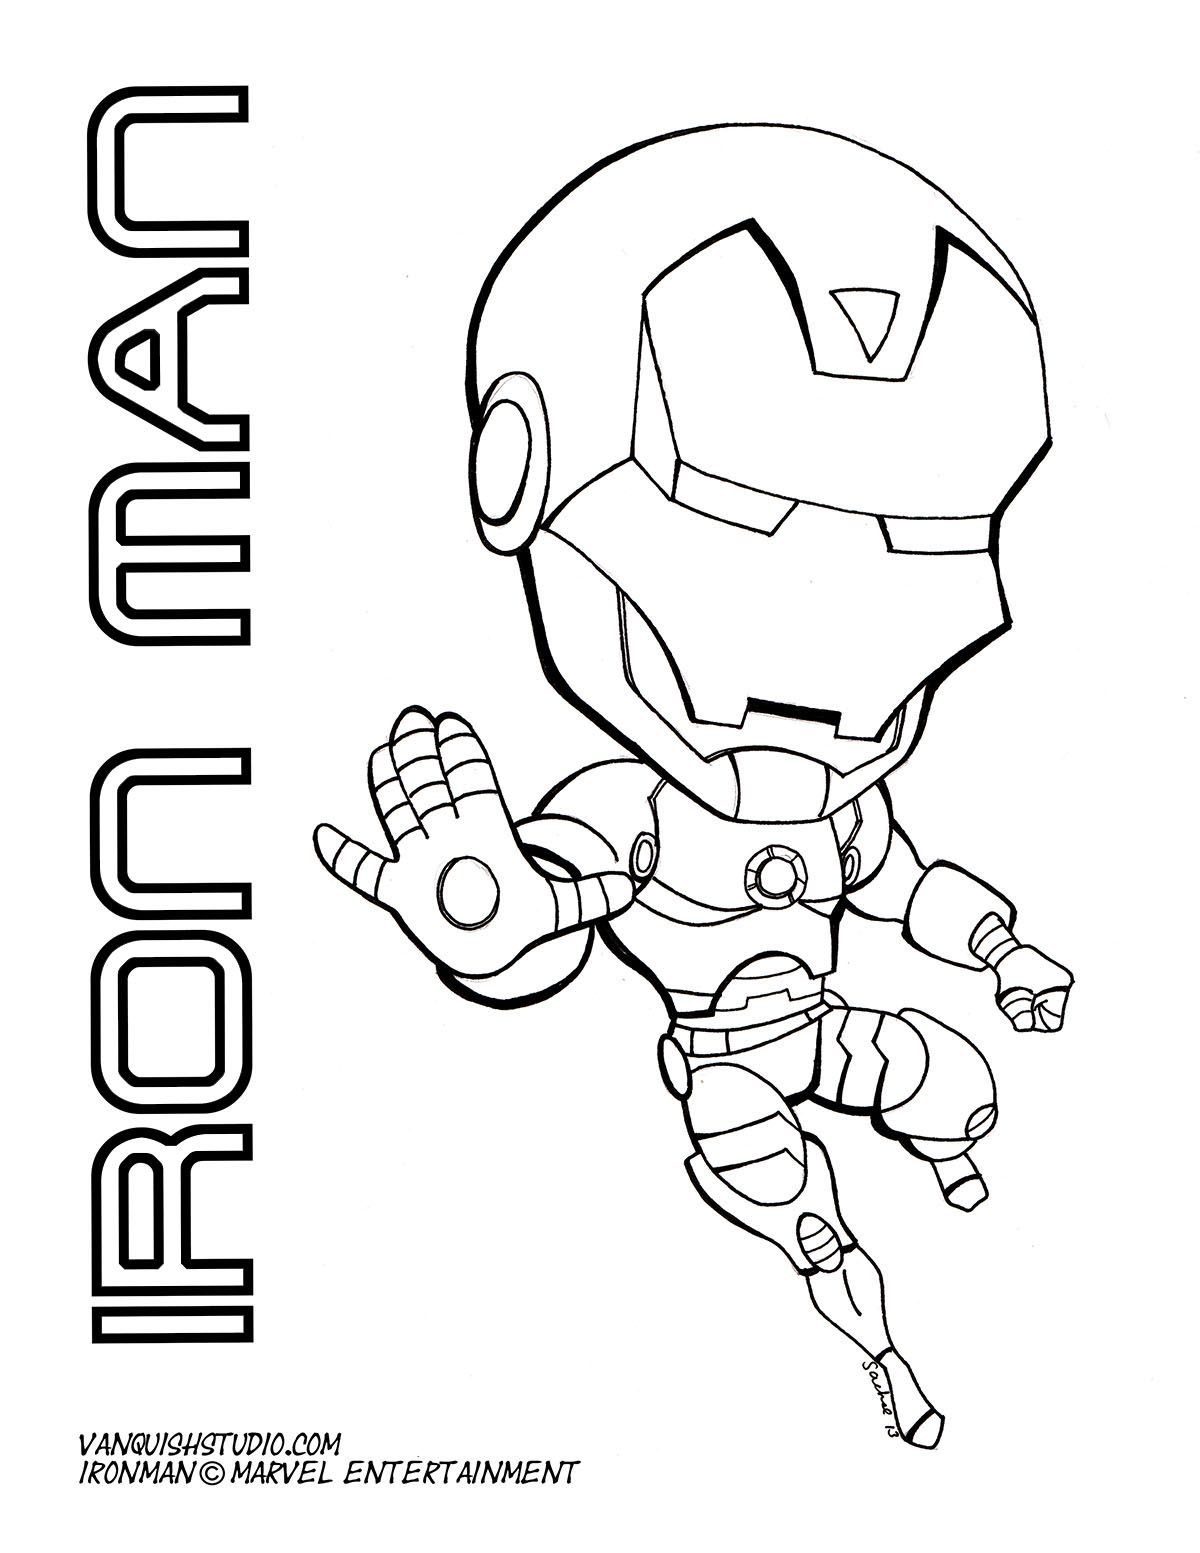 Ironman Chibi Fusion Drawing Combines Japanese Style With American Influence Superhero Coloring Pages Superhero Coloring Coloring Pages